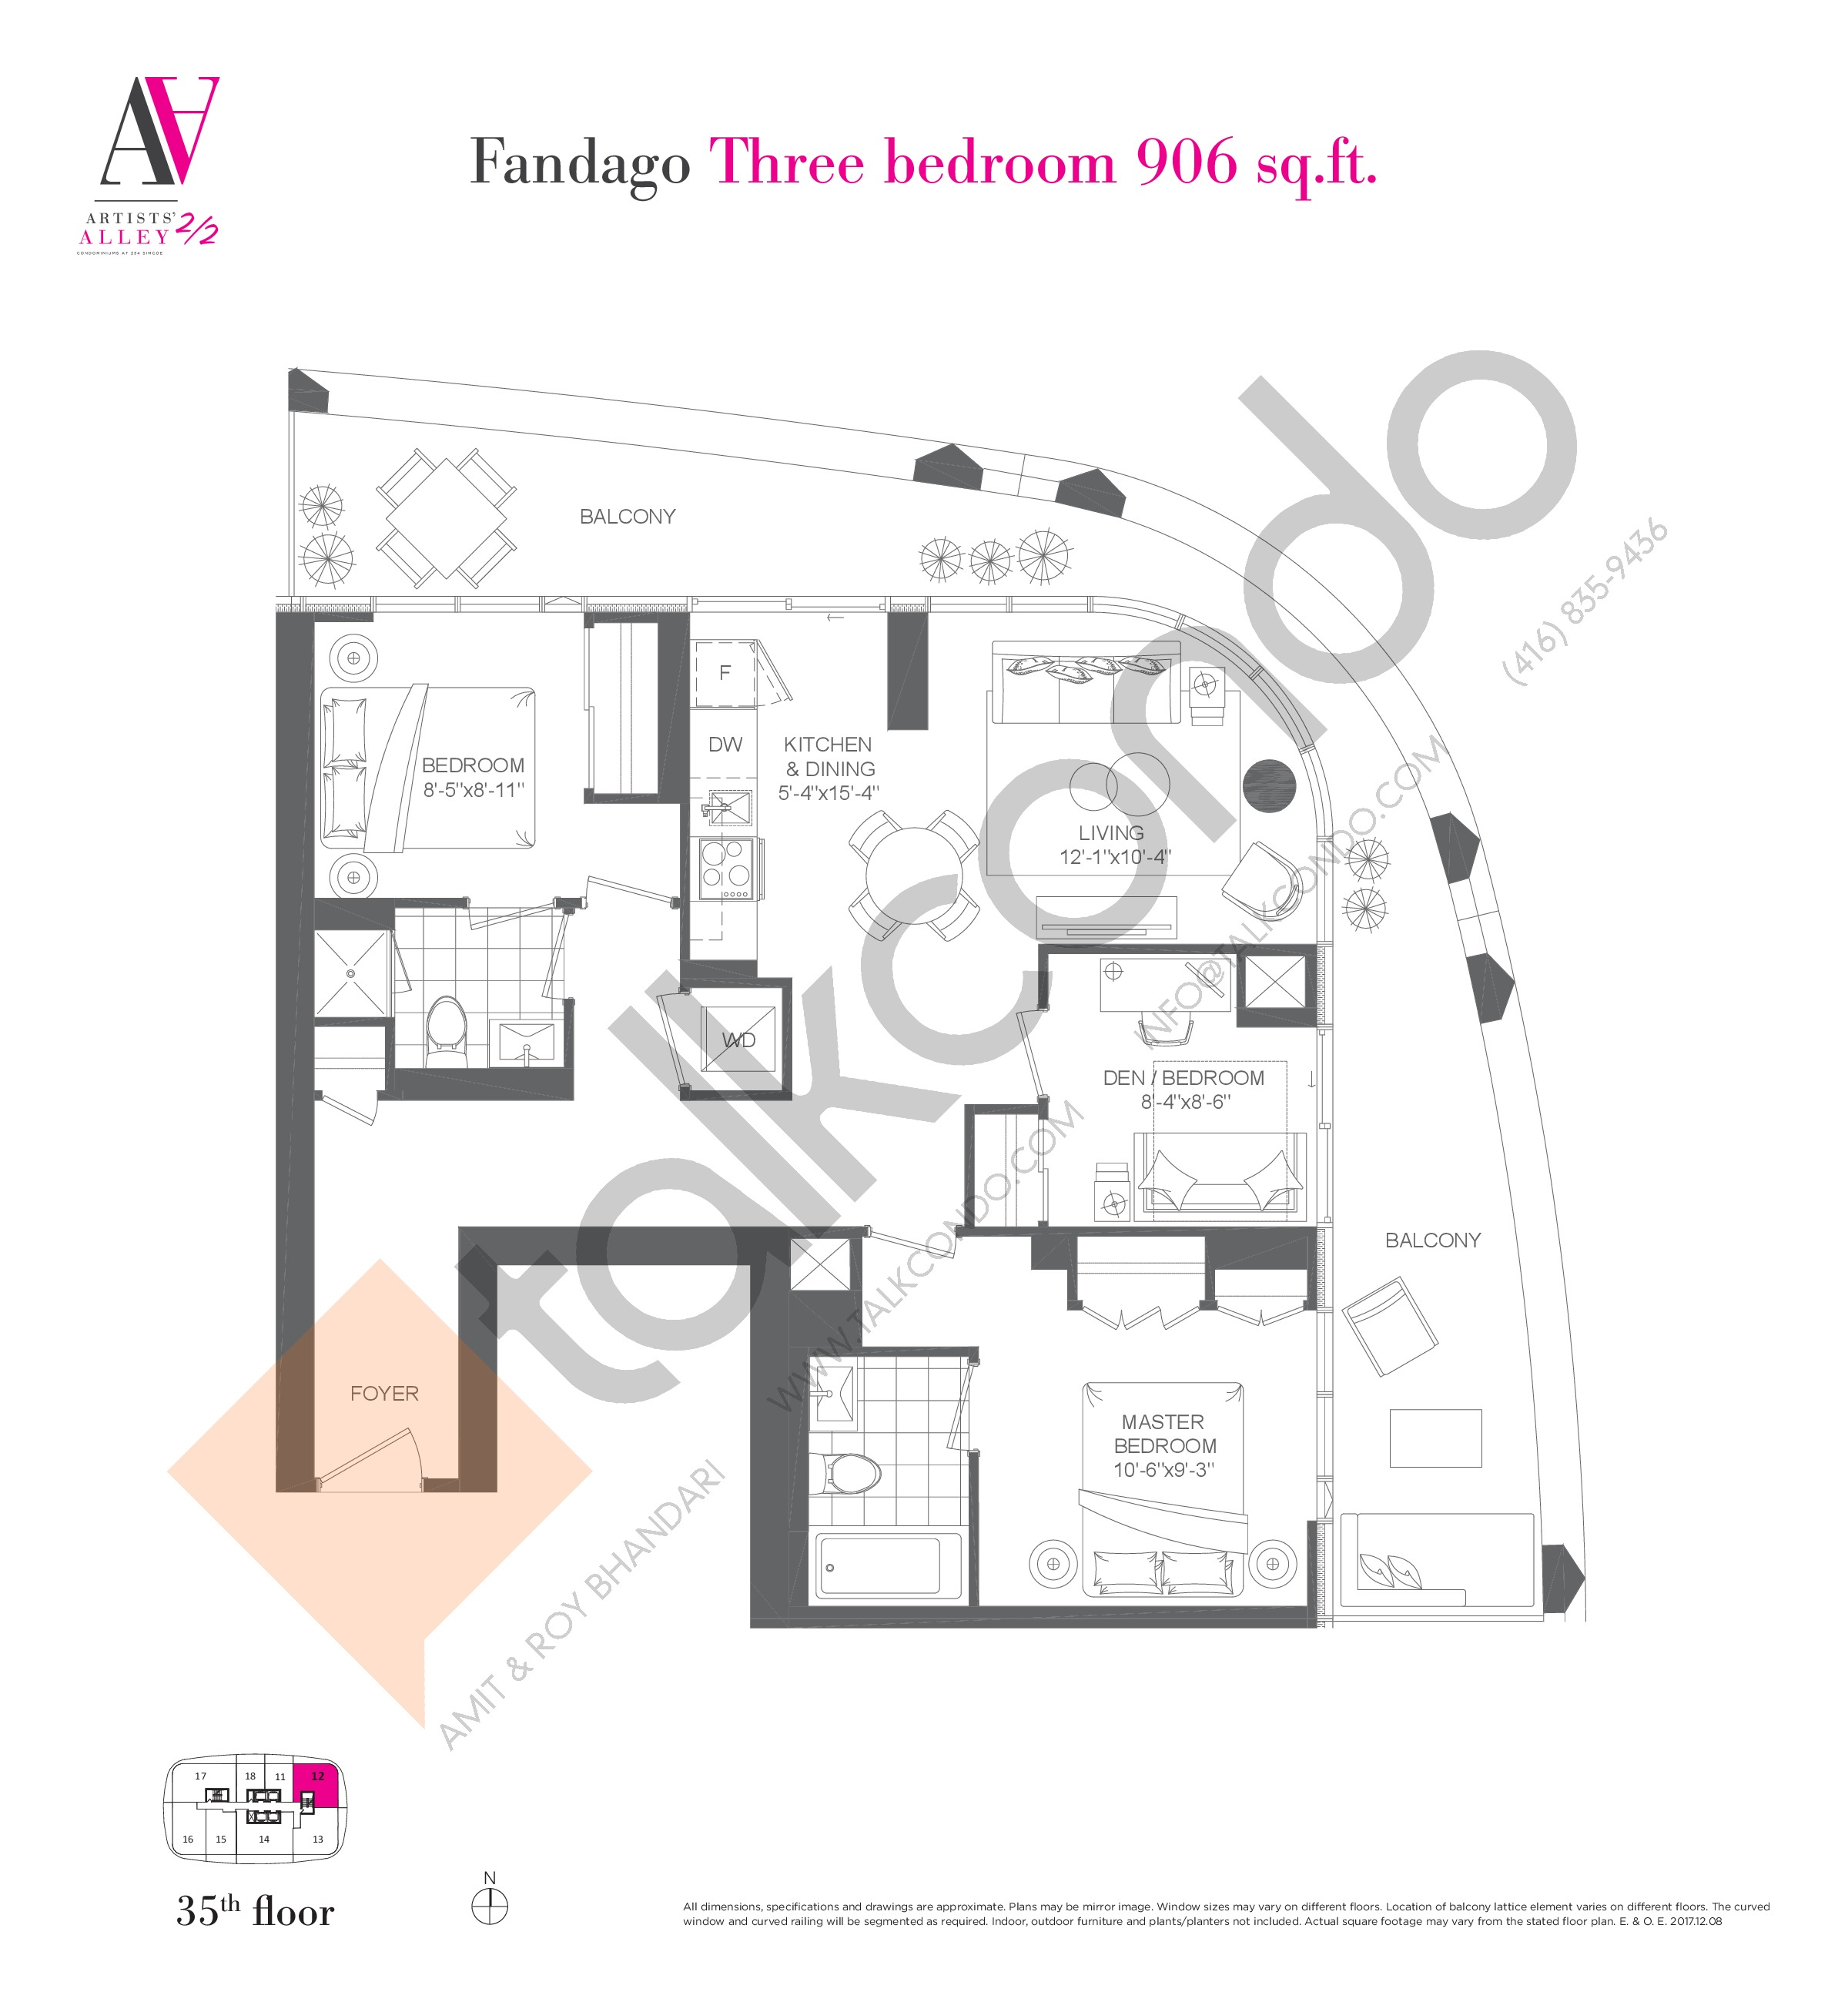 Fandago Floor Plan at Artists' Alley 2 Condos - 906 sq.ft